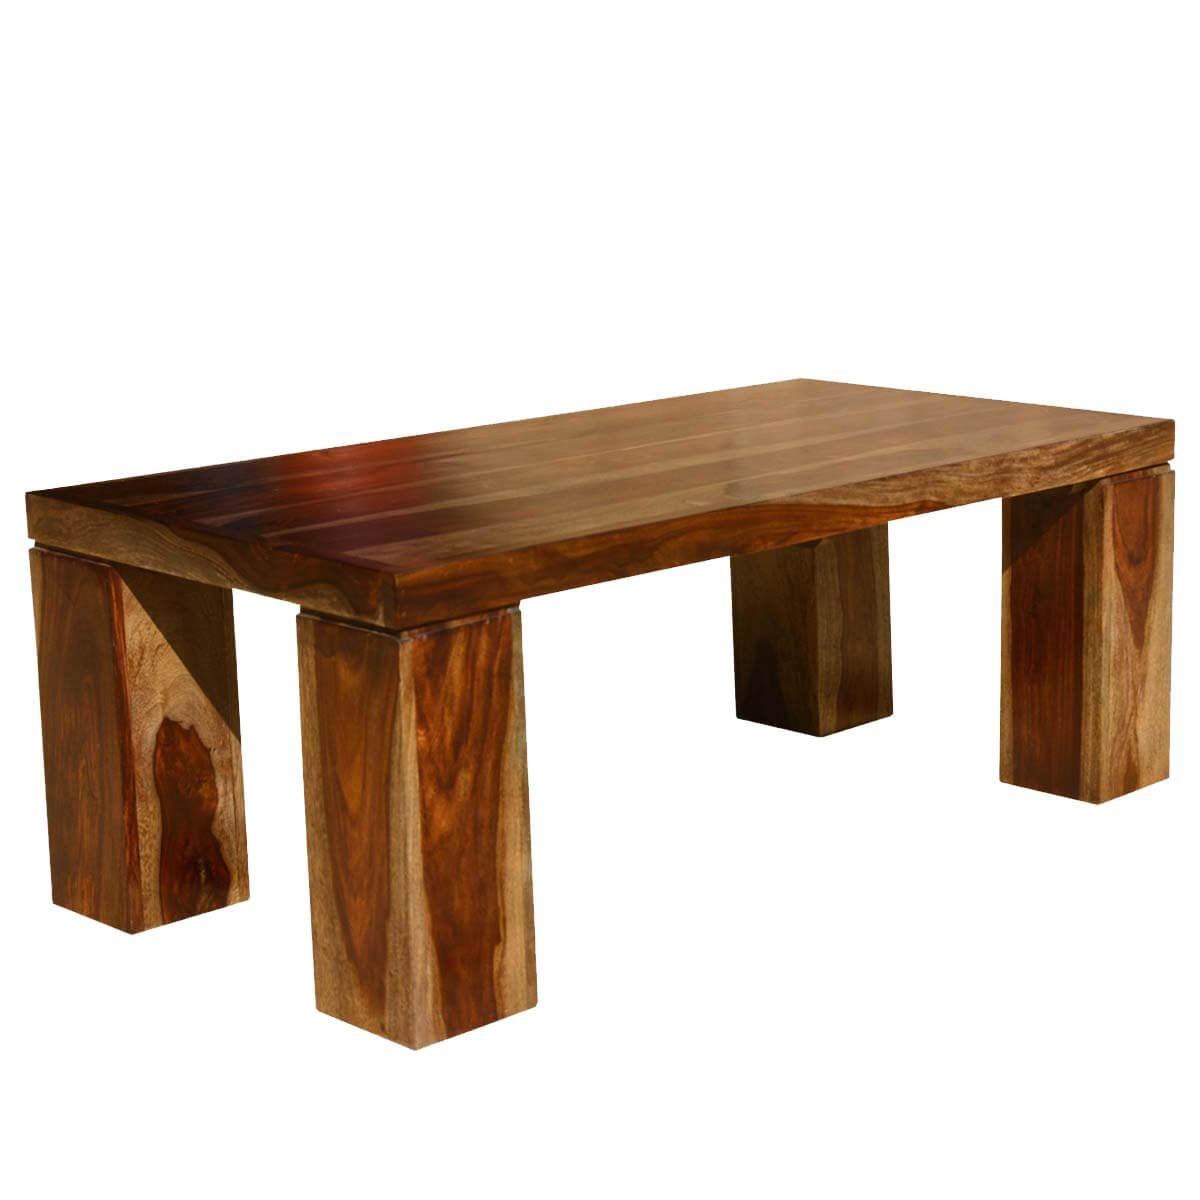 Contemporary solid wood espresso coffee table w block legs contemporary indian rosewood espresso coffee table w block legs geotapseo Choice Image